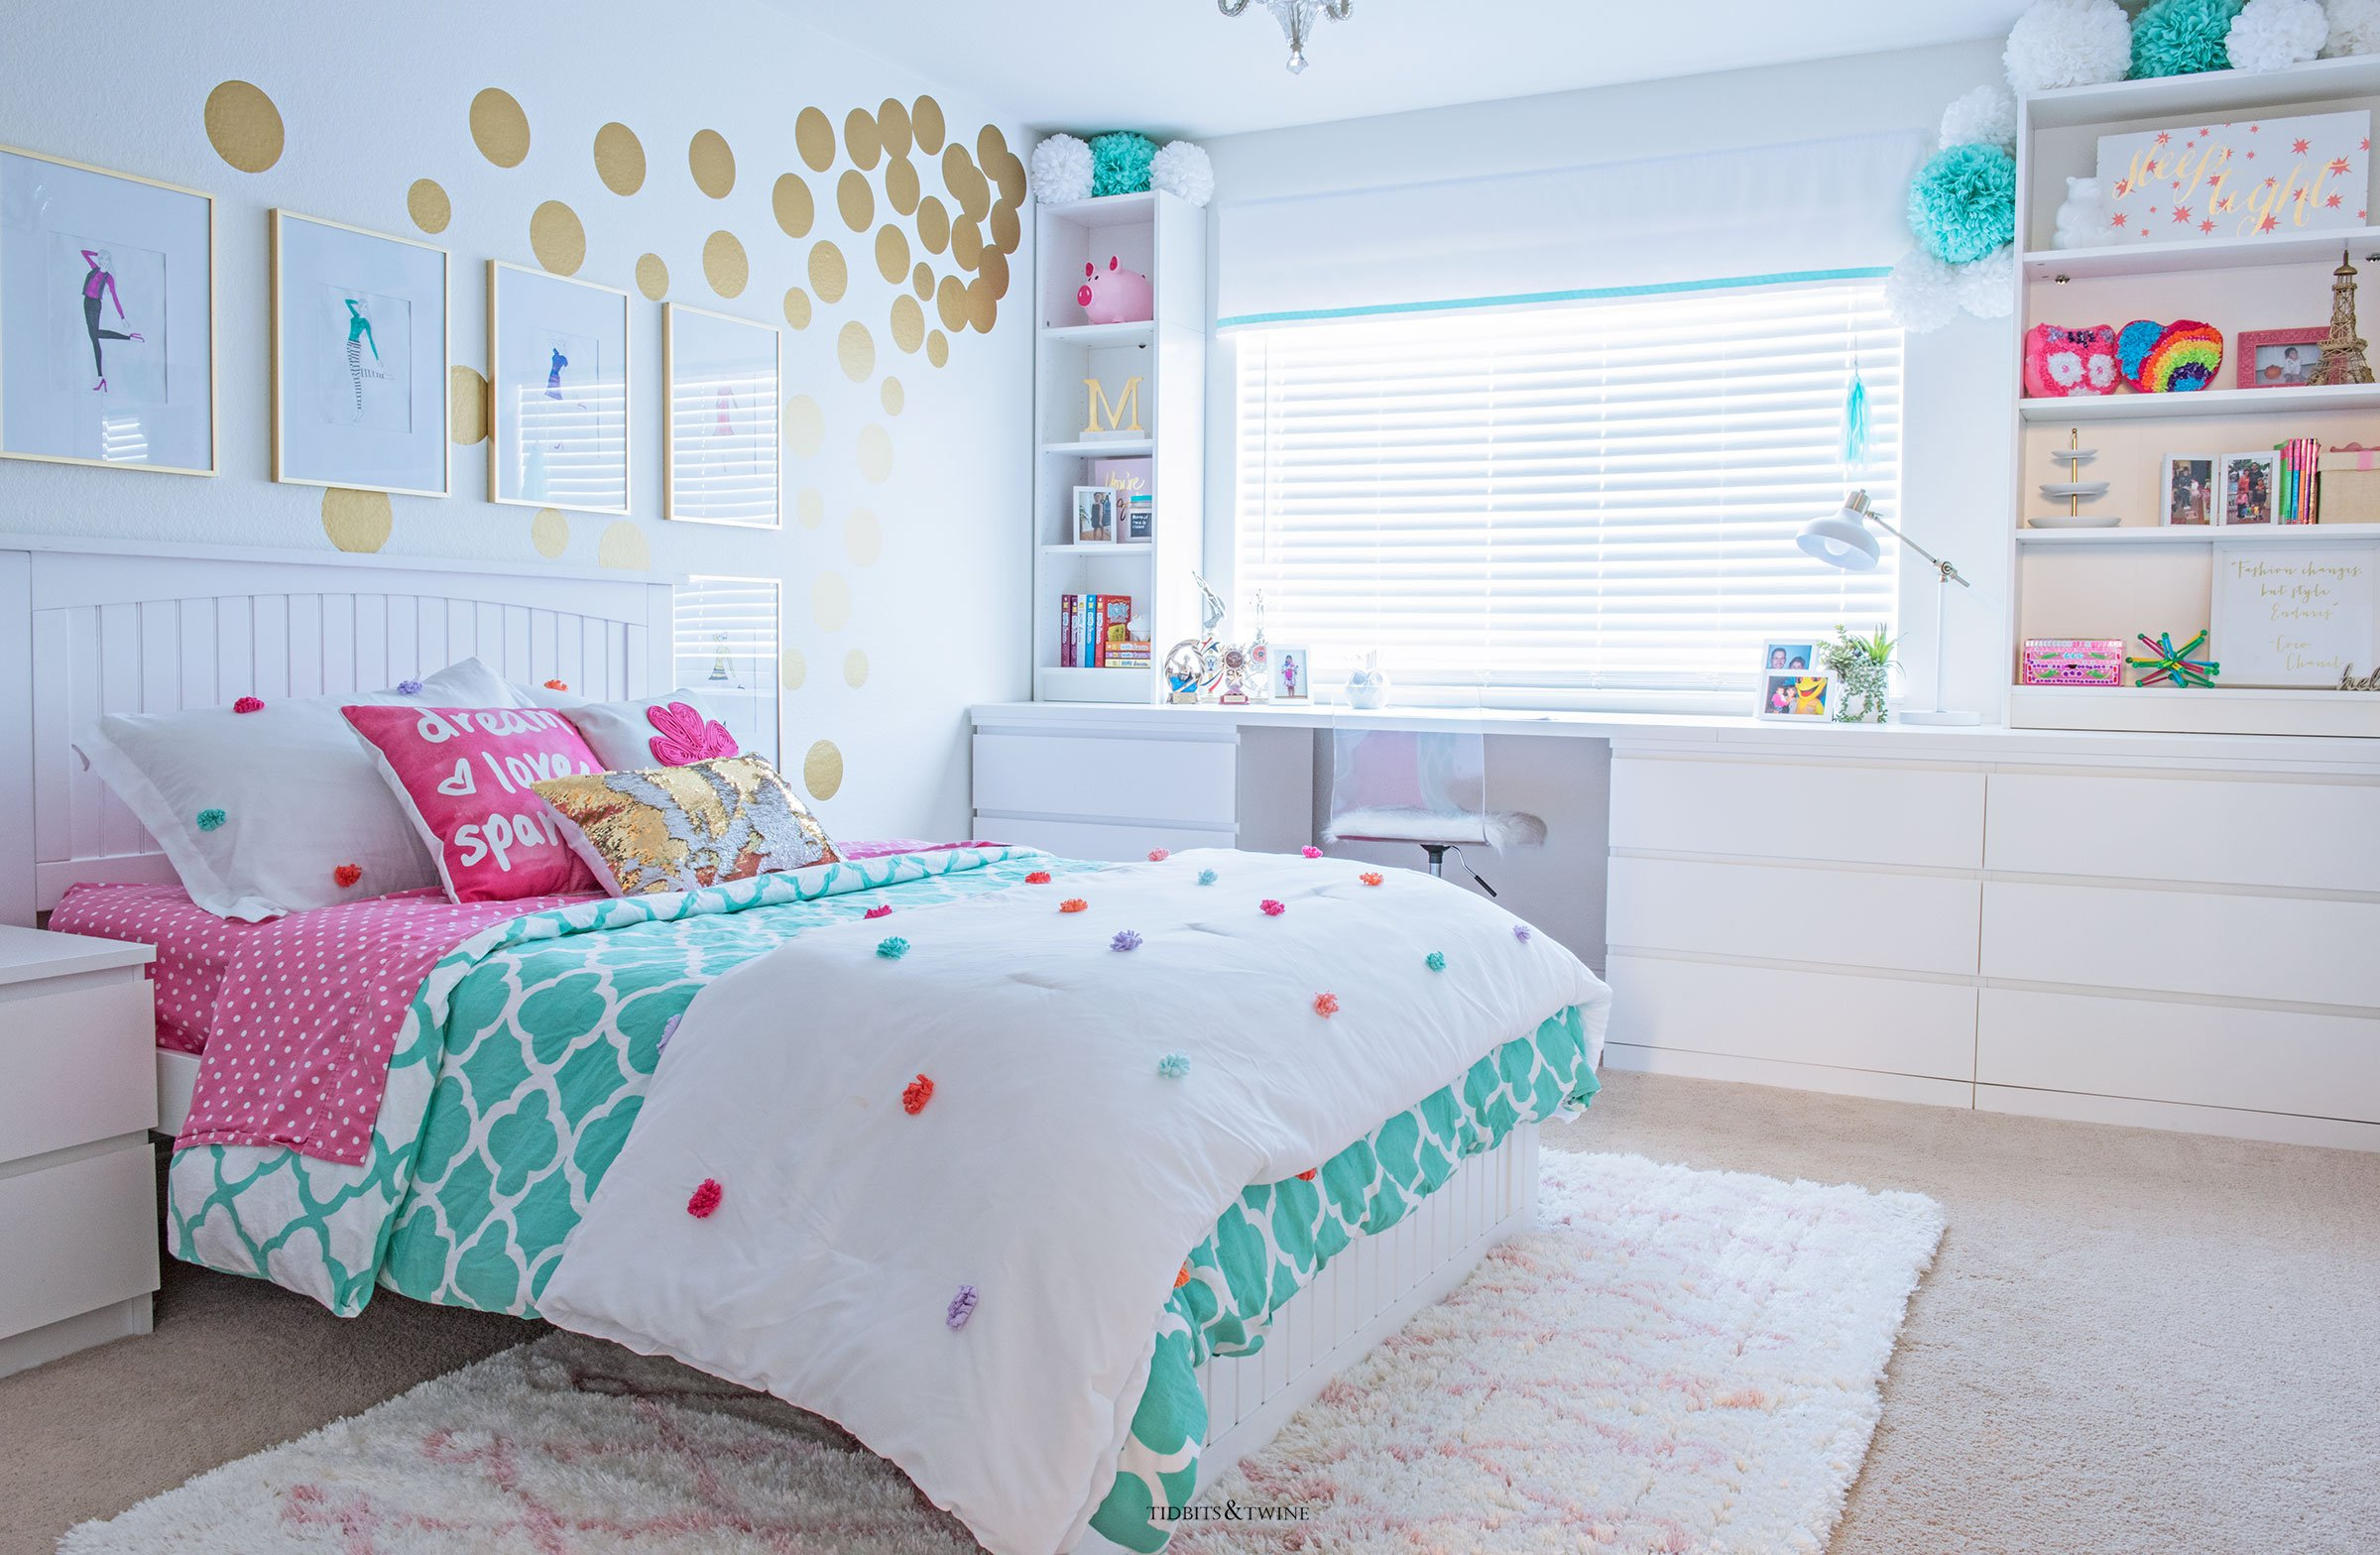 Teen Girl Bedroom Makeover in Turquoise and White and Gold